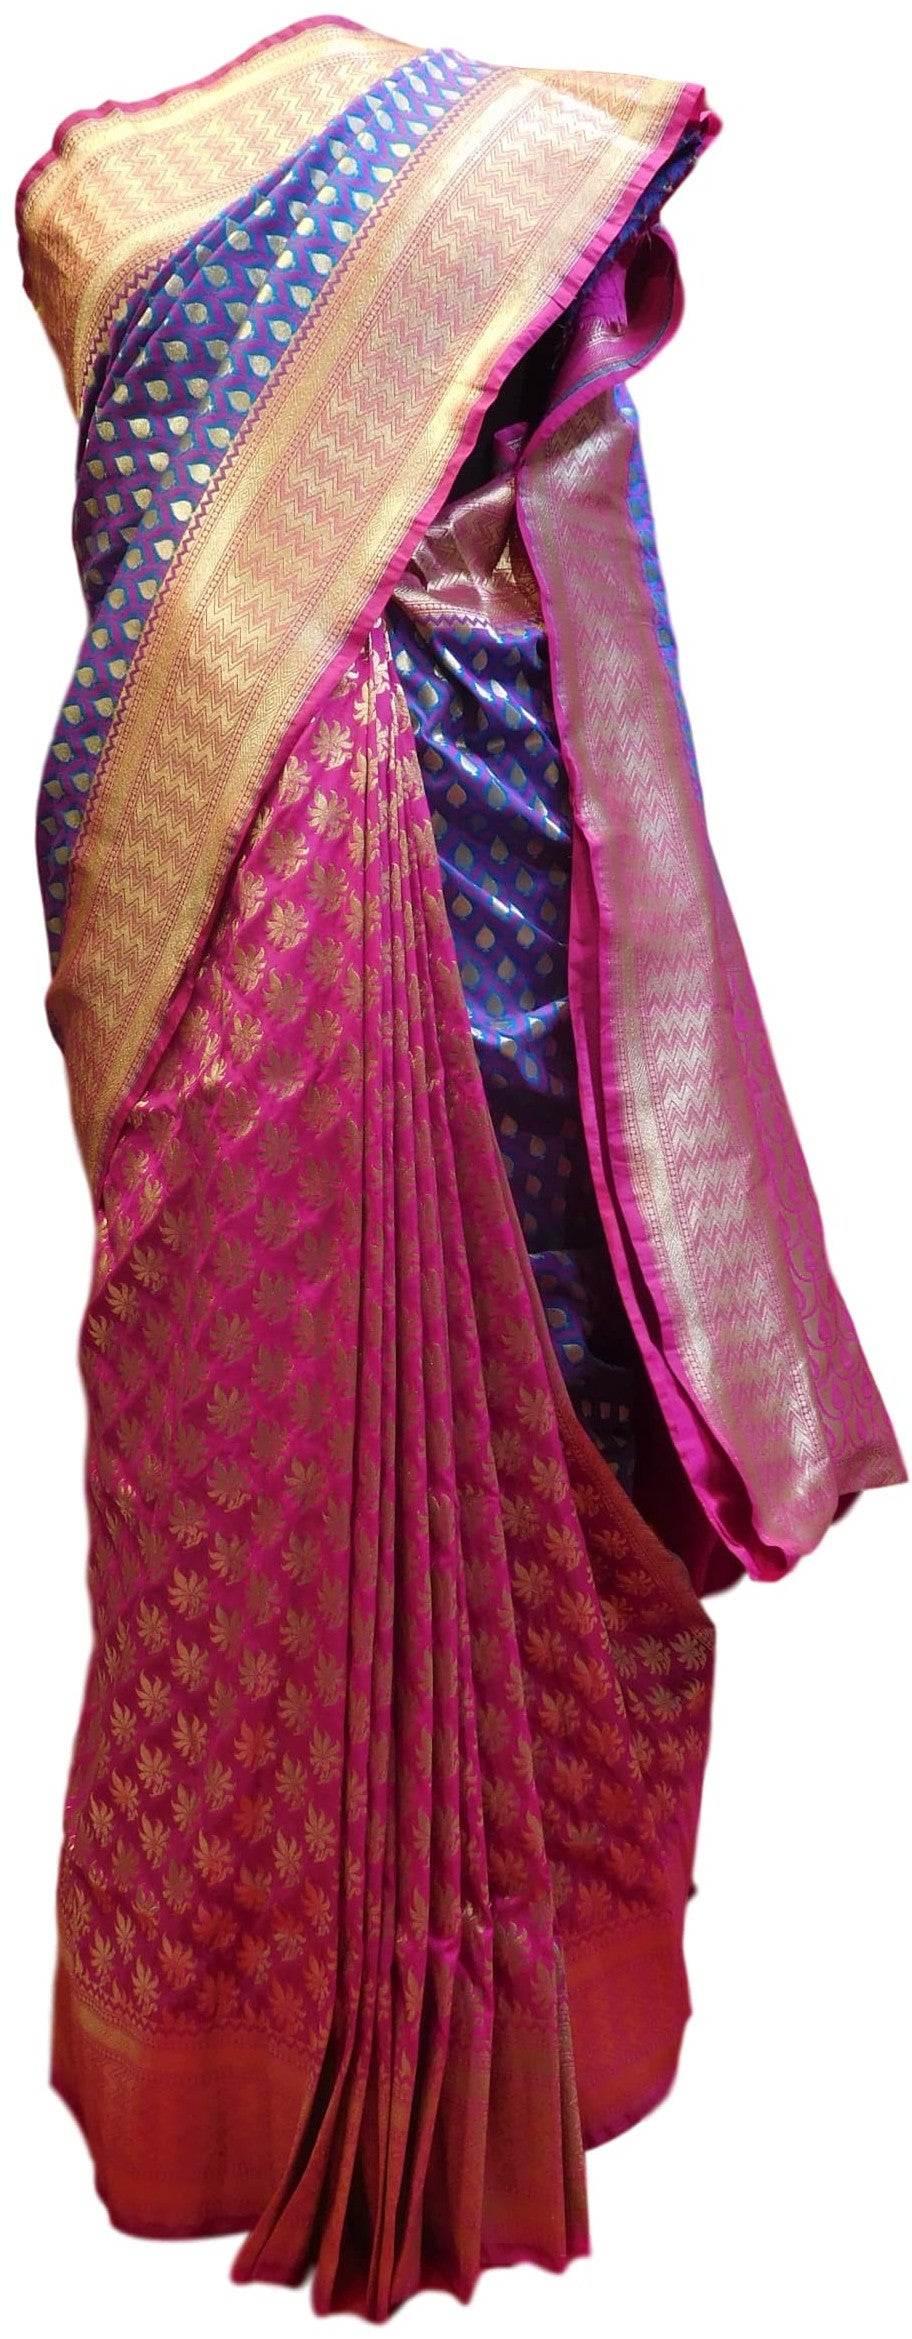 Blue & Pink Designer Bridal Hand Weaven Pure Benarasi Zari Work Saree Sari With Blouse